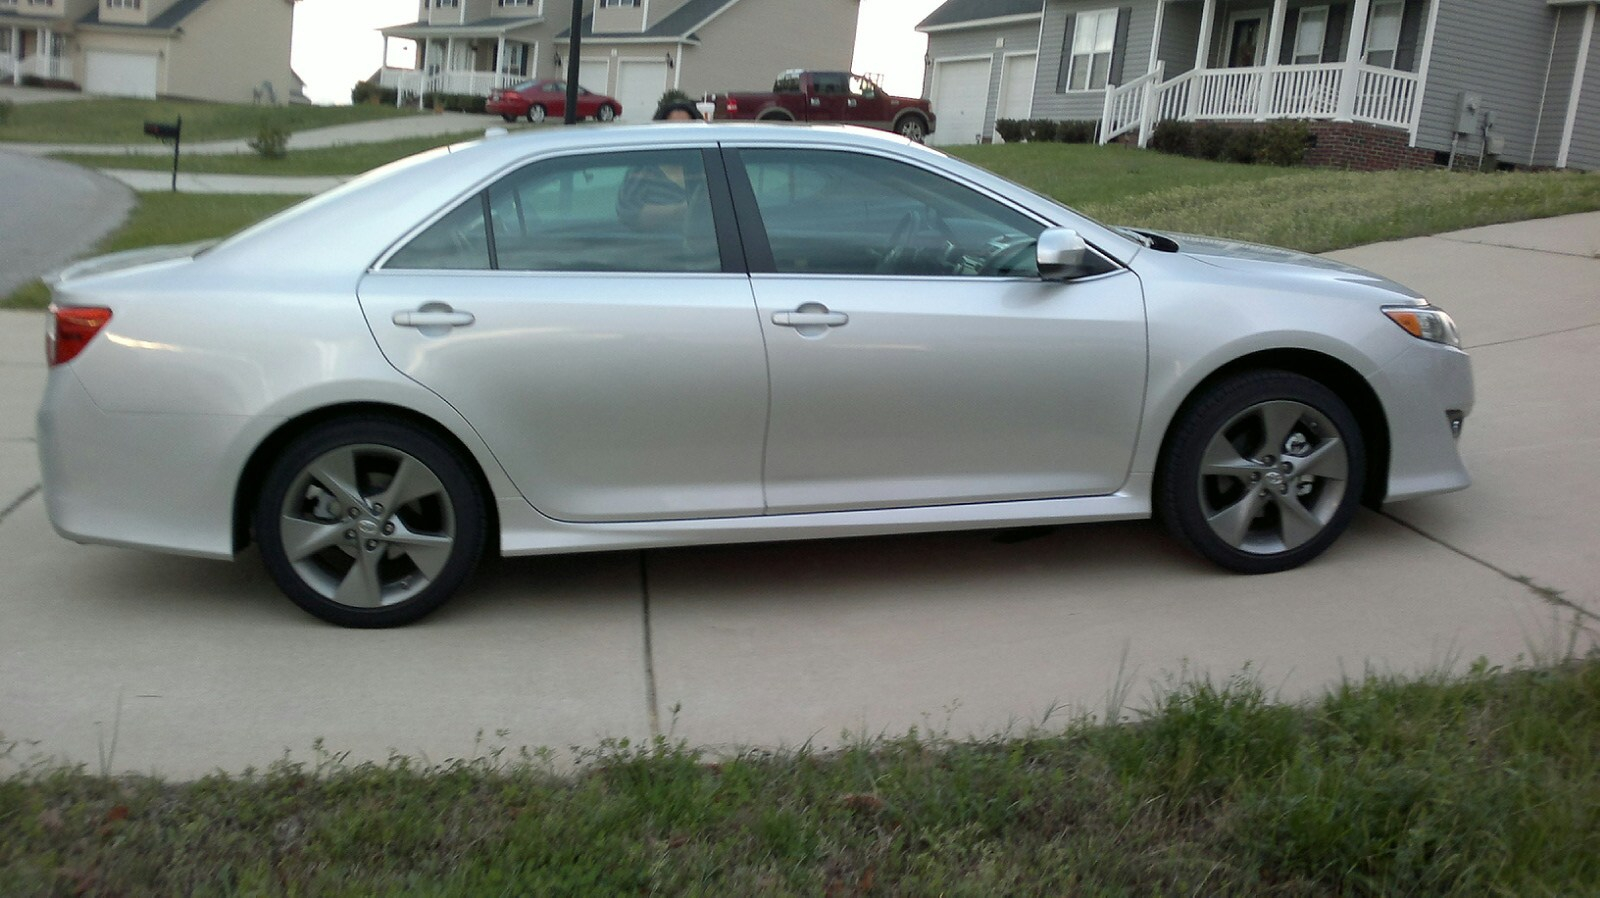 ArmyWife 101 Reviews the 2012 Toyota Camry SE For The Weekend